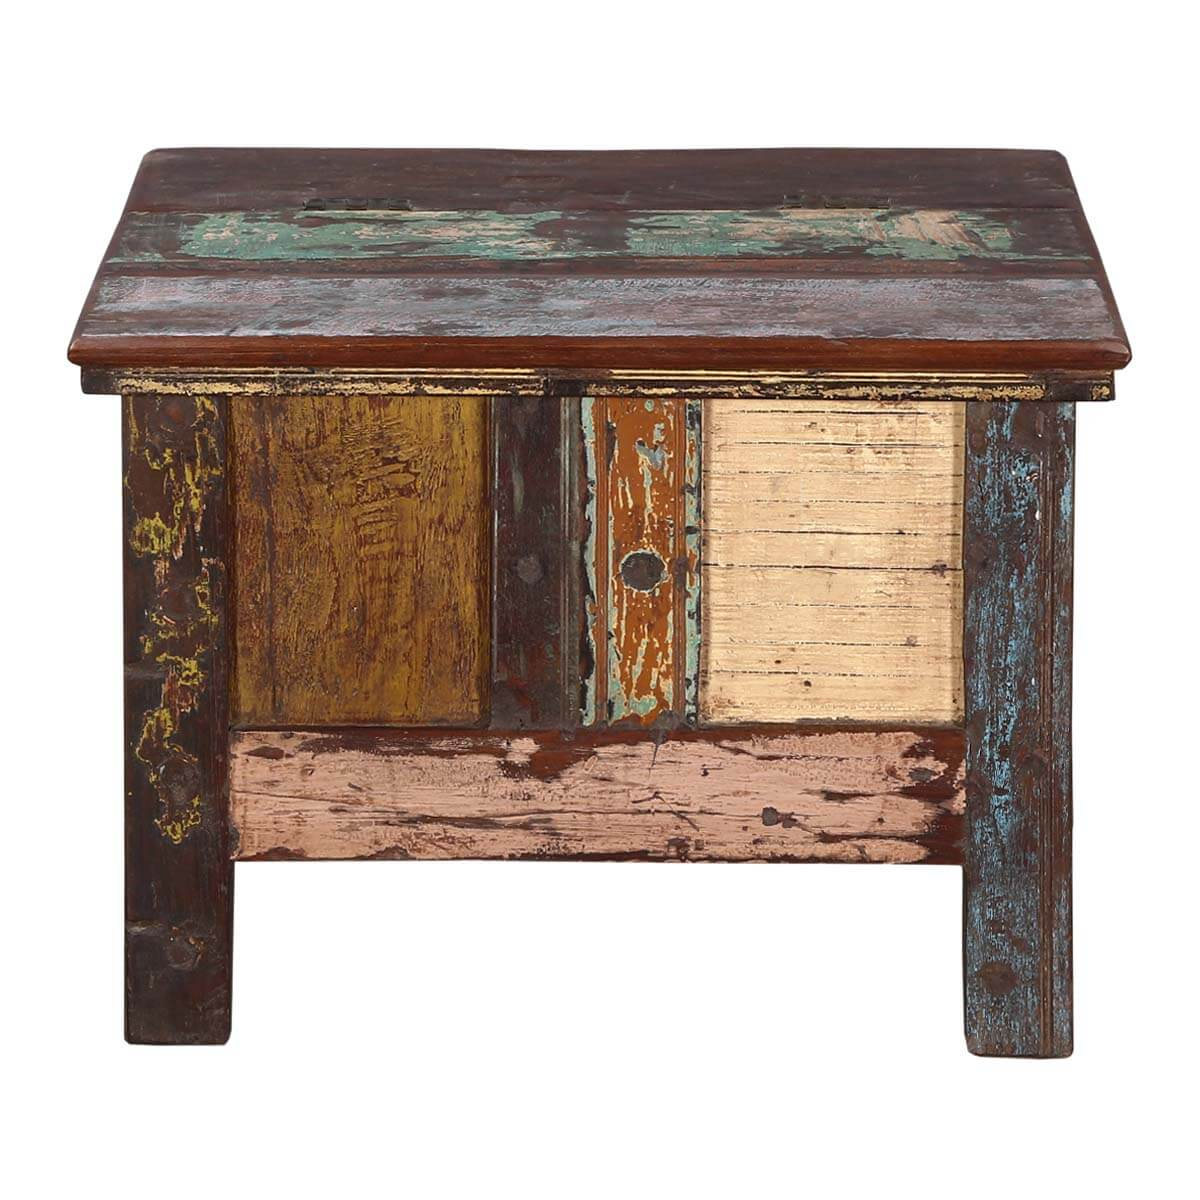 Rustic All Wood Coffee Table: Rustic Patches Reclaimed Wood Standing Coffee Table Chest